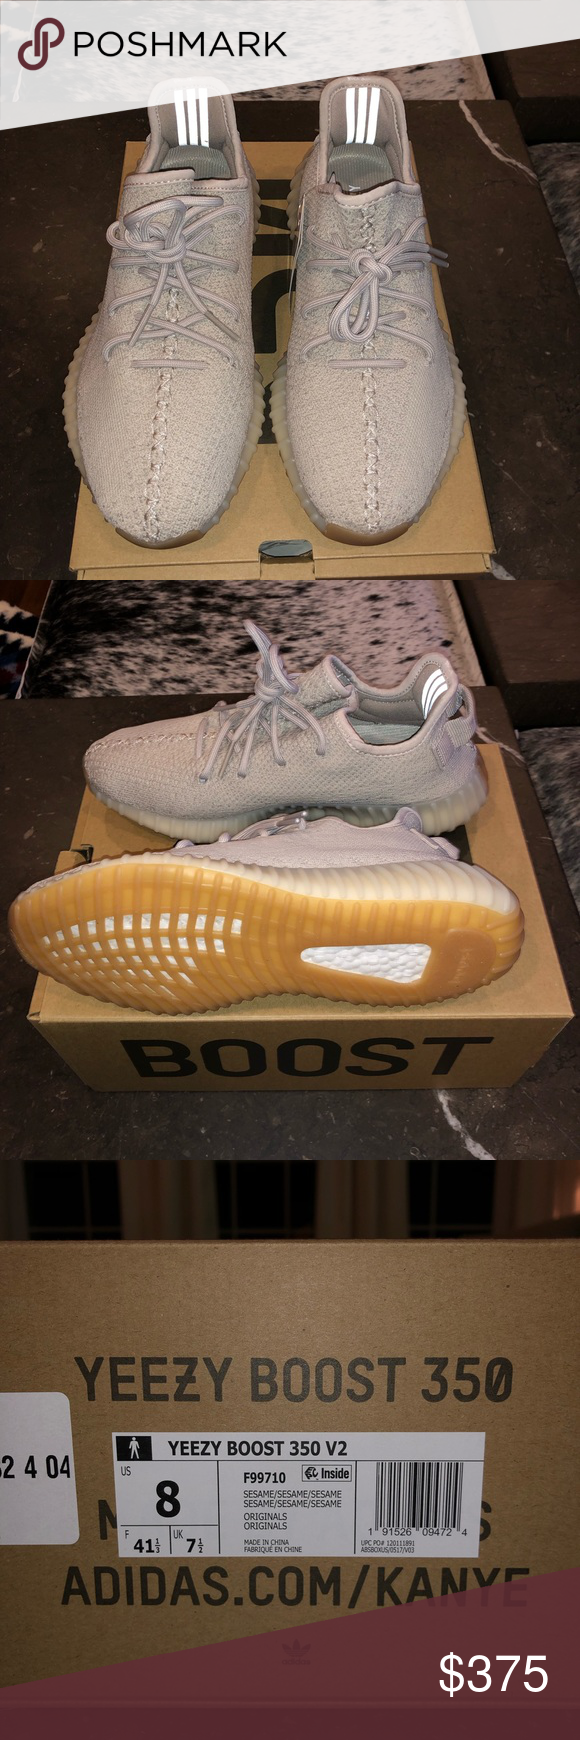 the best attitude dd460 29144 Yeezy Boost 350 | color: Sesame Brand new with tags. Never ...